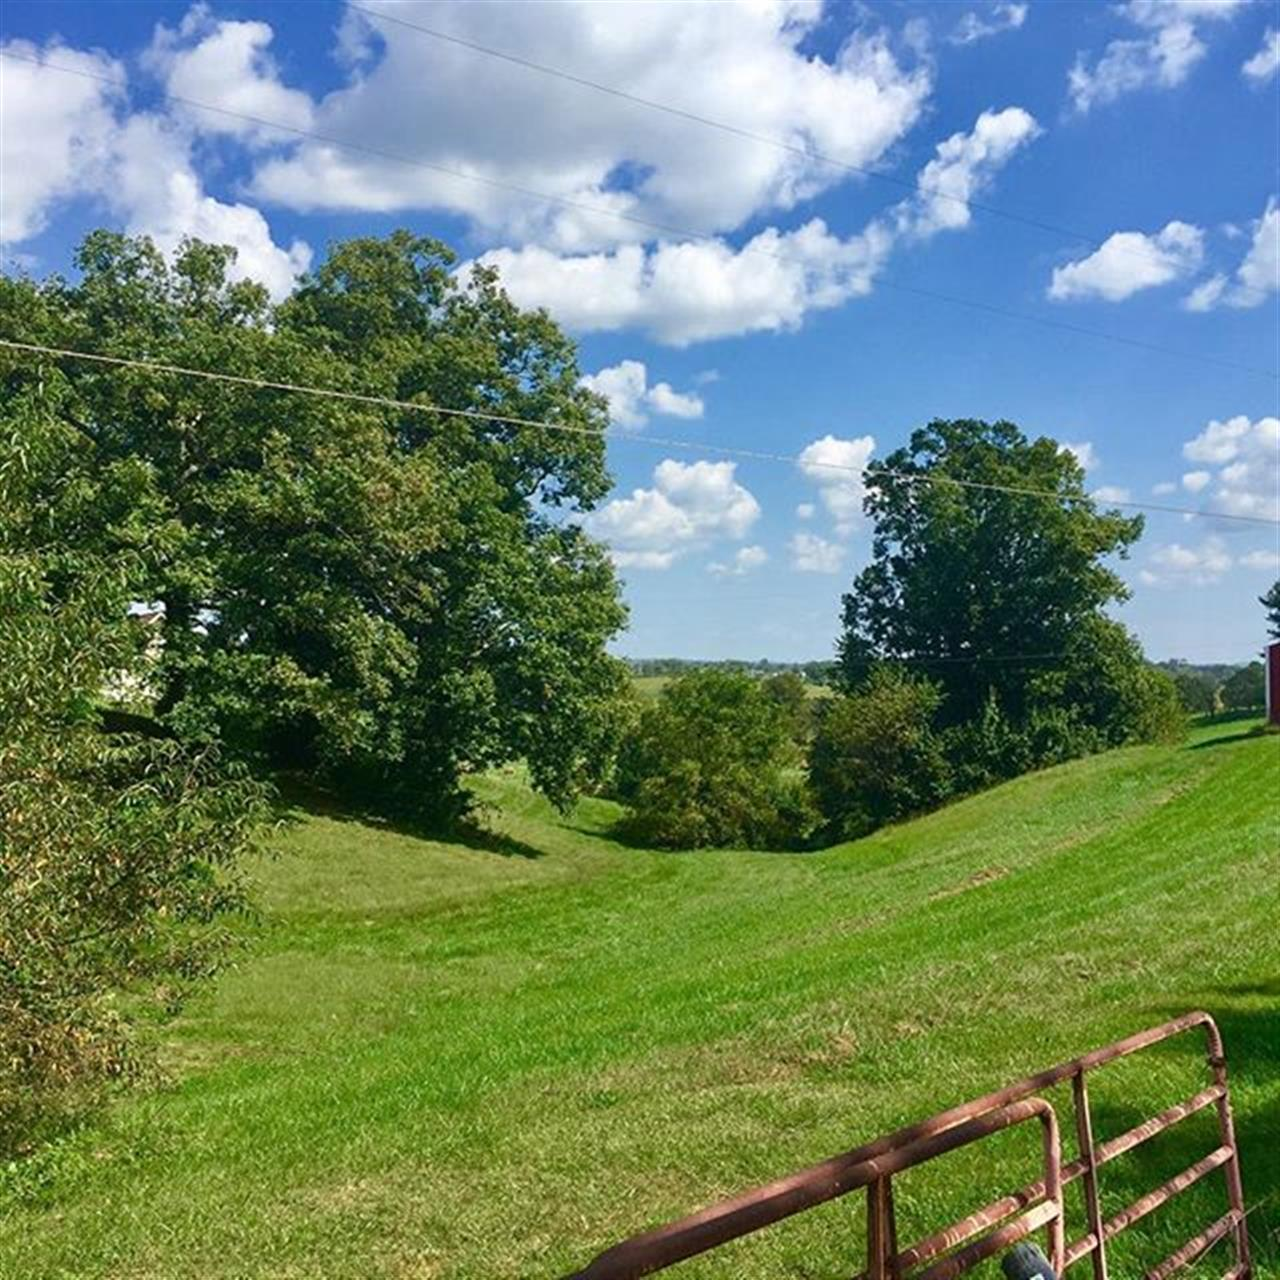 Just outside my newest listing in #LondonKY on Gregory Lane. Along with this beautiful view is a 4 BR, 2100sqft home and 3 acres! $189,900. Call me 606-524-7894 #lovekentucky #realtor #whataview #kyfarm #kyhome #realestate #leadingre #kyrealtor #kentucky #countryside #homeforsale #homesweethome #farmlife #salliedavidsonrealtors